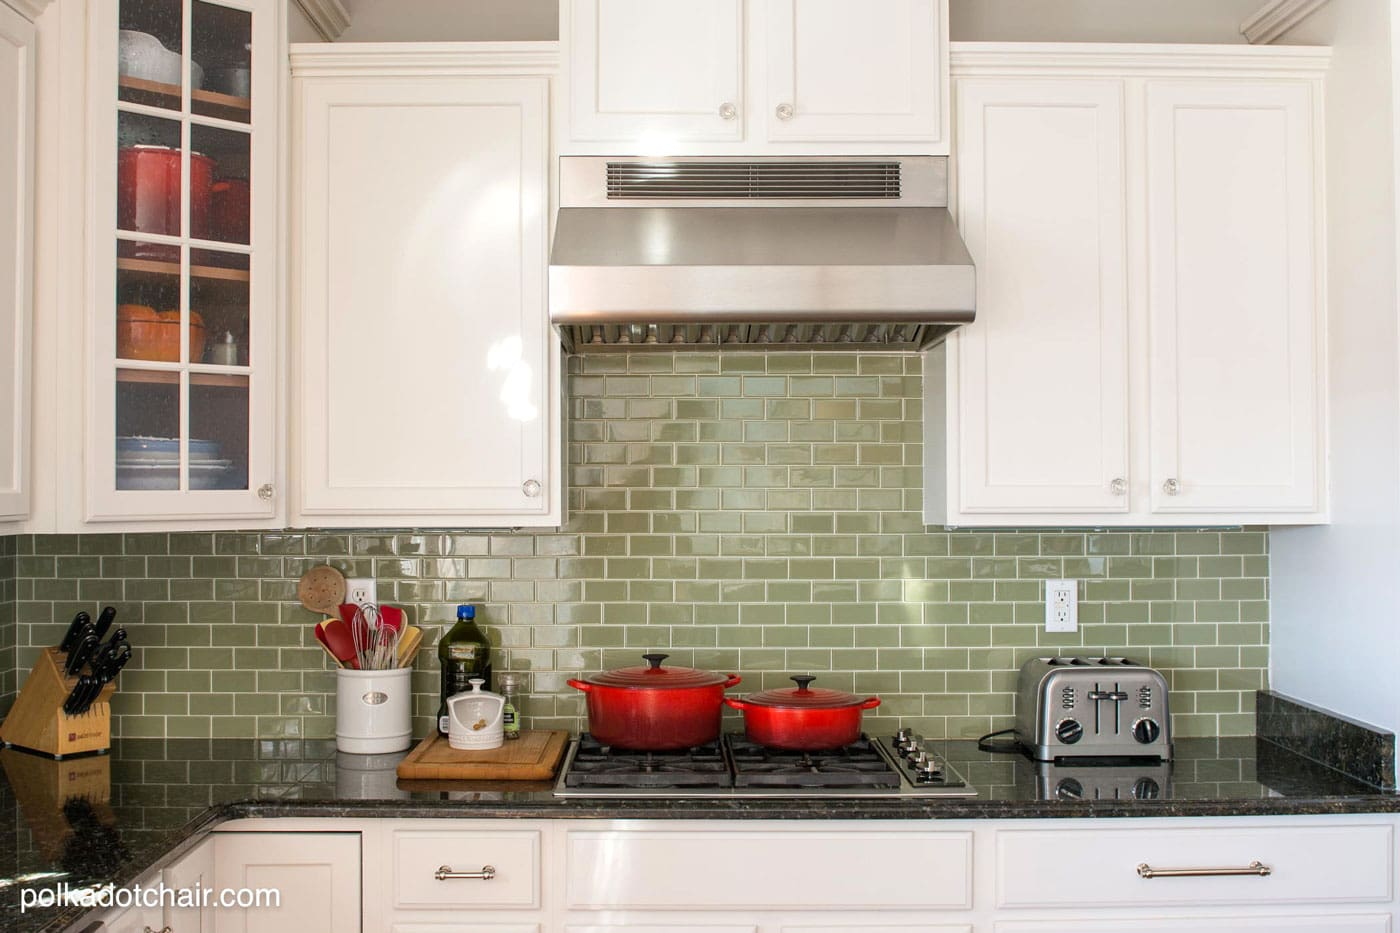 Green Tile Backsplash & Before and After Photos of a Kitchen that had it's Cabinets Painted White- lots of great ideas for decorating a farmhouse style kitchen!